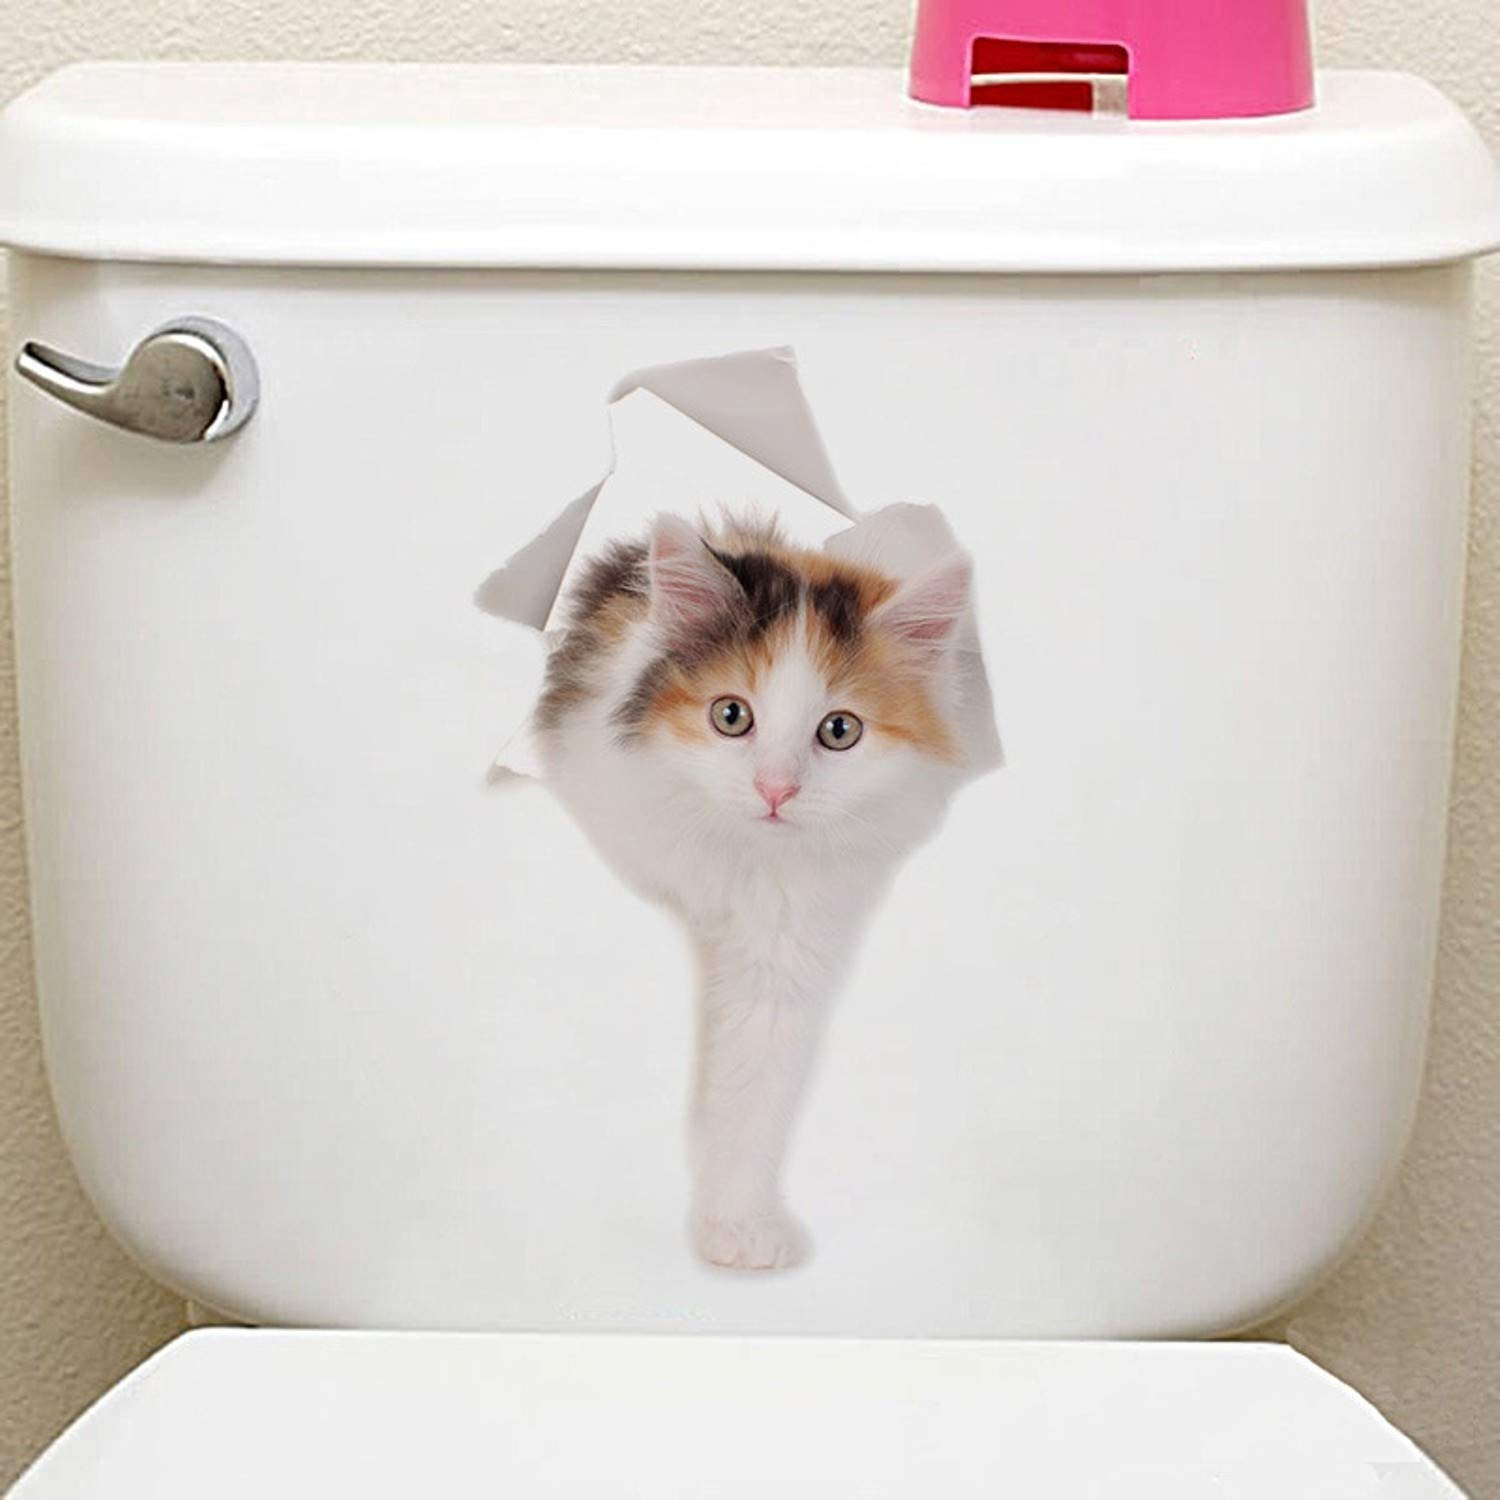 Amazon.com: Batop Cats 3D Wall Sticker - Toilet Stickers - Hole View Vivid Dogs Bathroom Home Decoration - Animal Vinyl Decals - Art Sticker Wall Poster ...